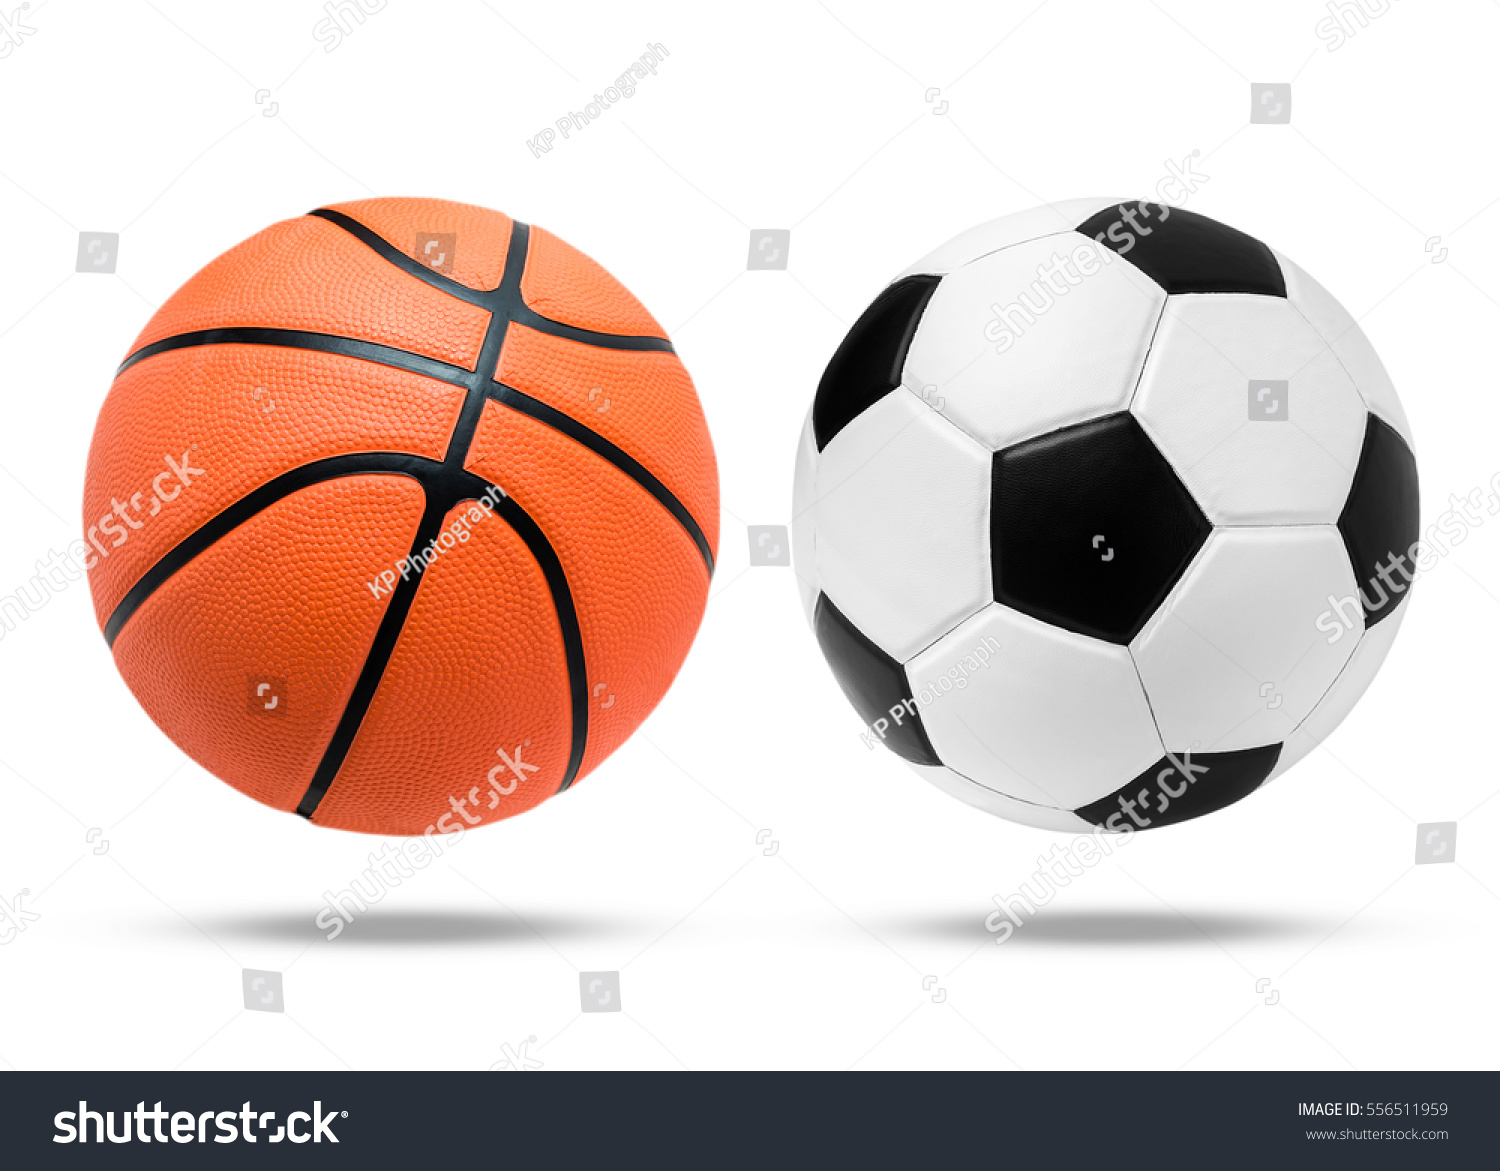 Basketball Ball Soccer Ball Basketball Ball On Isolated Stock Photo Edit Now